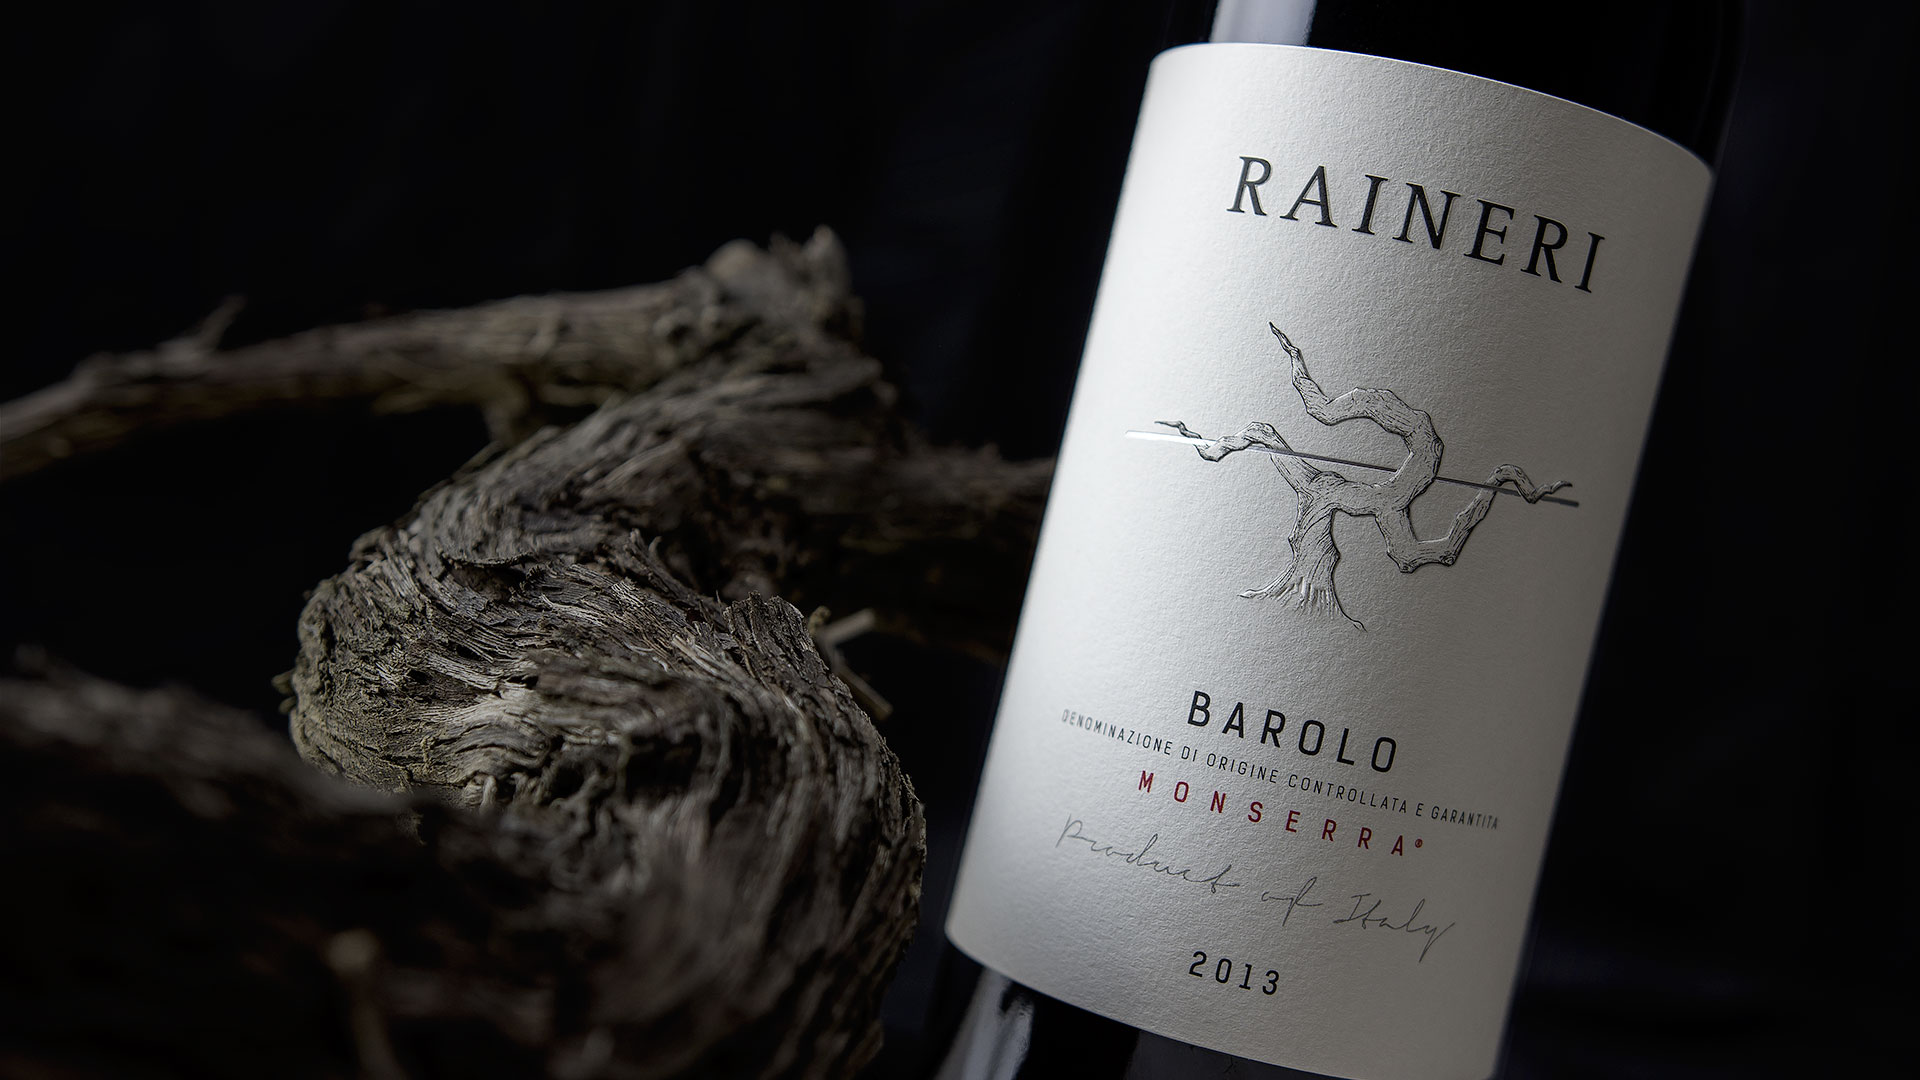 Raineri Barolo Monserra